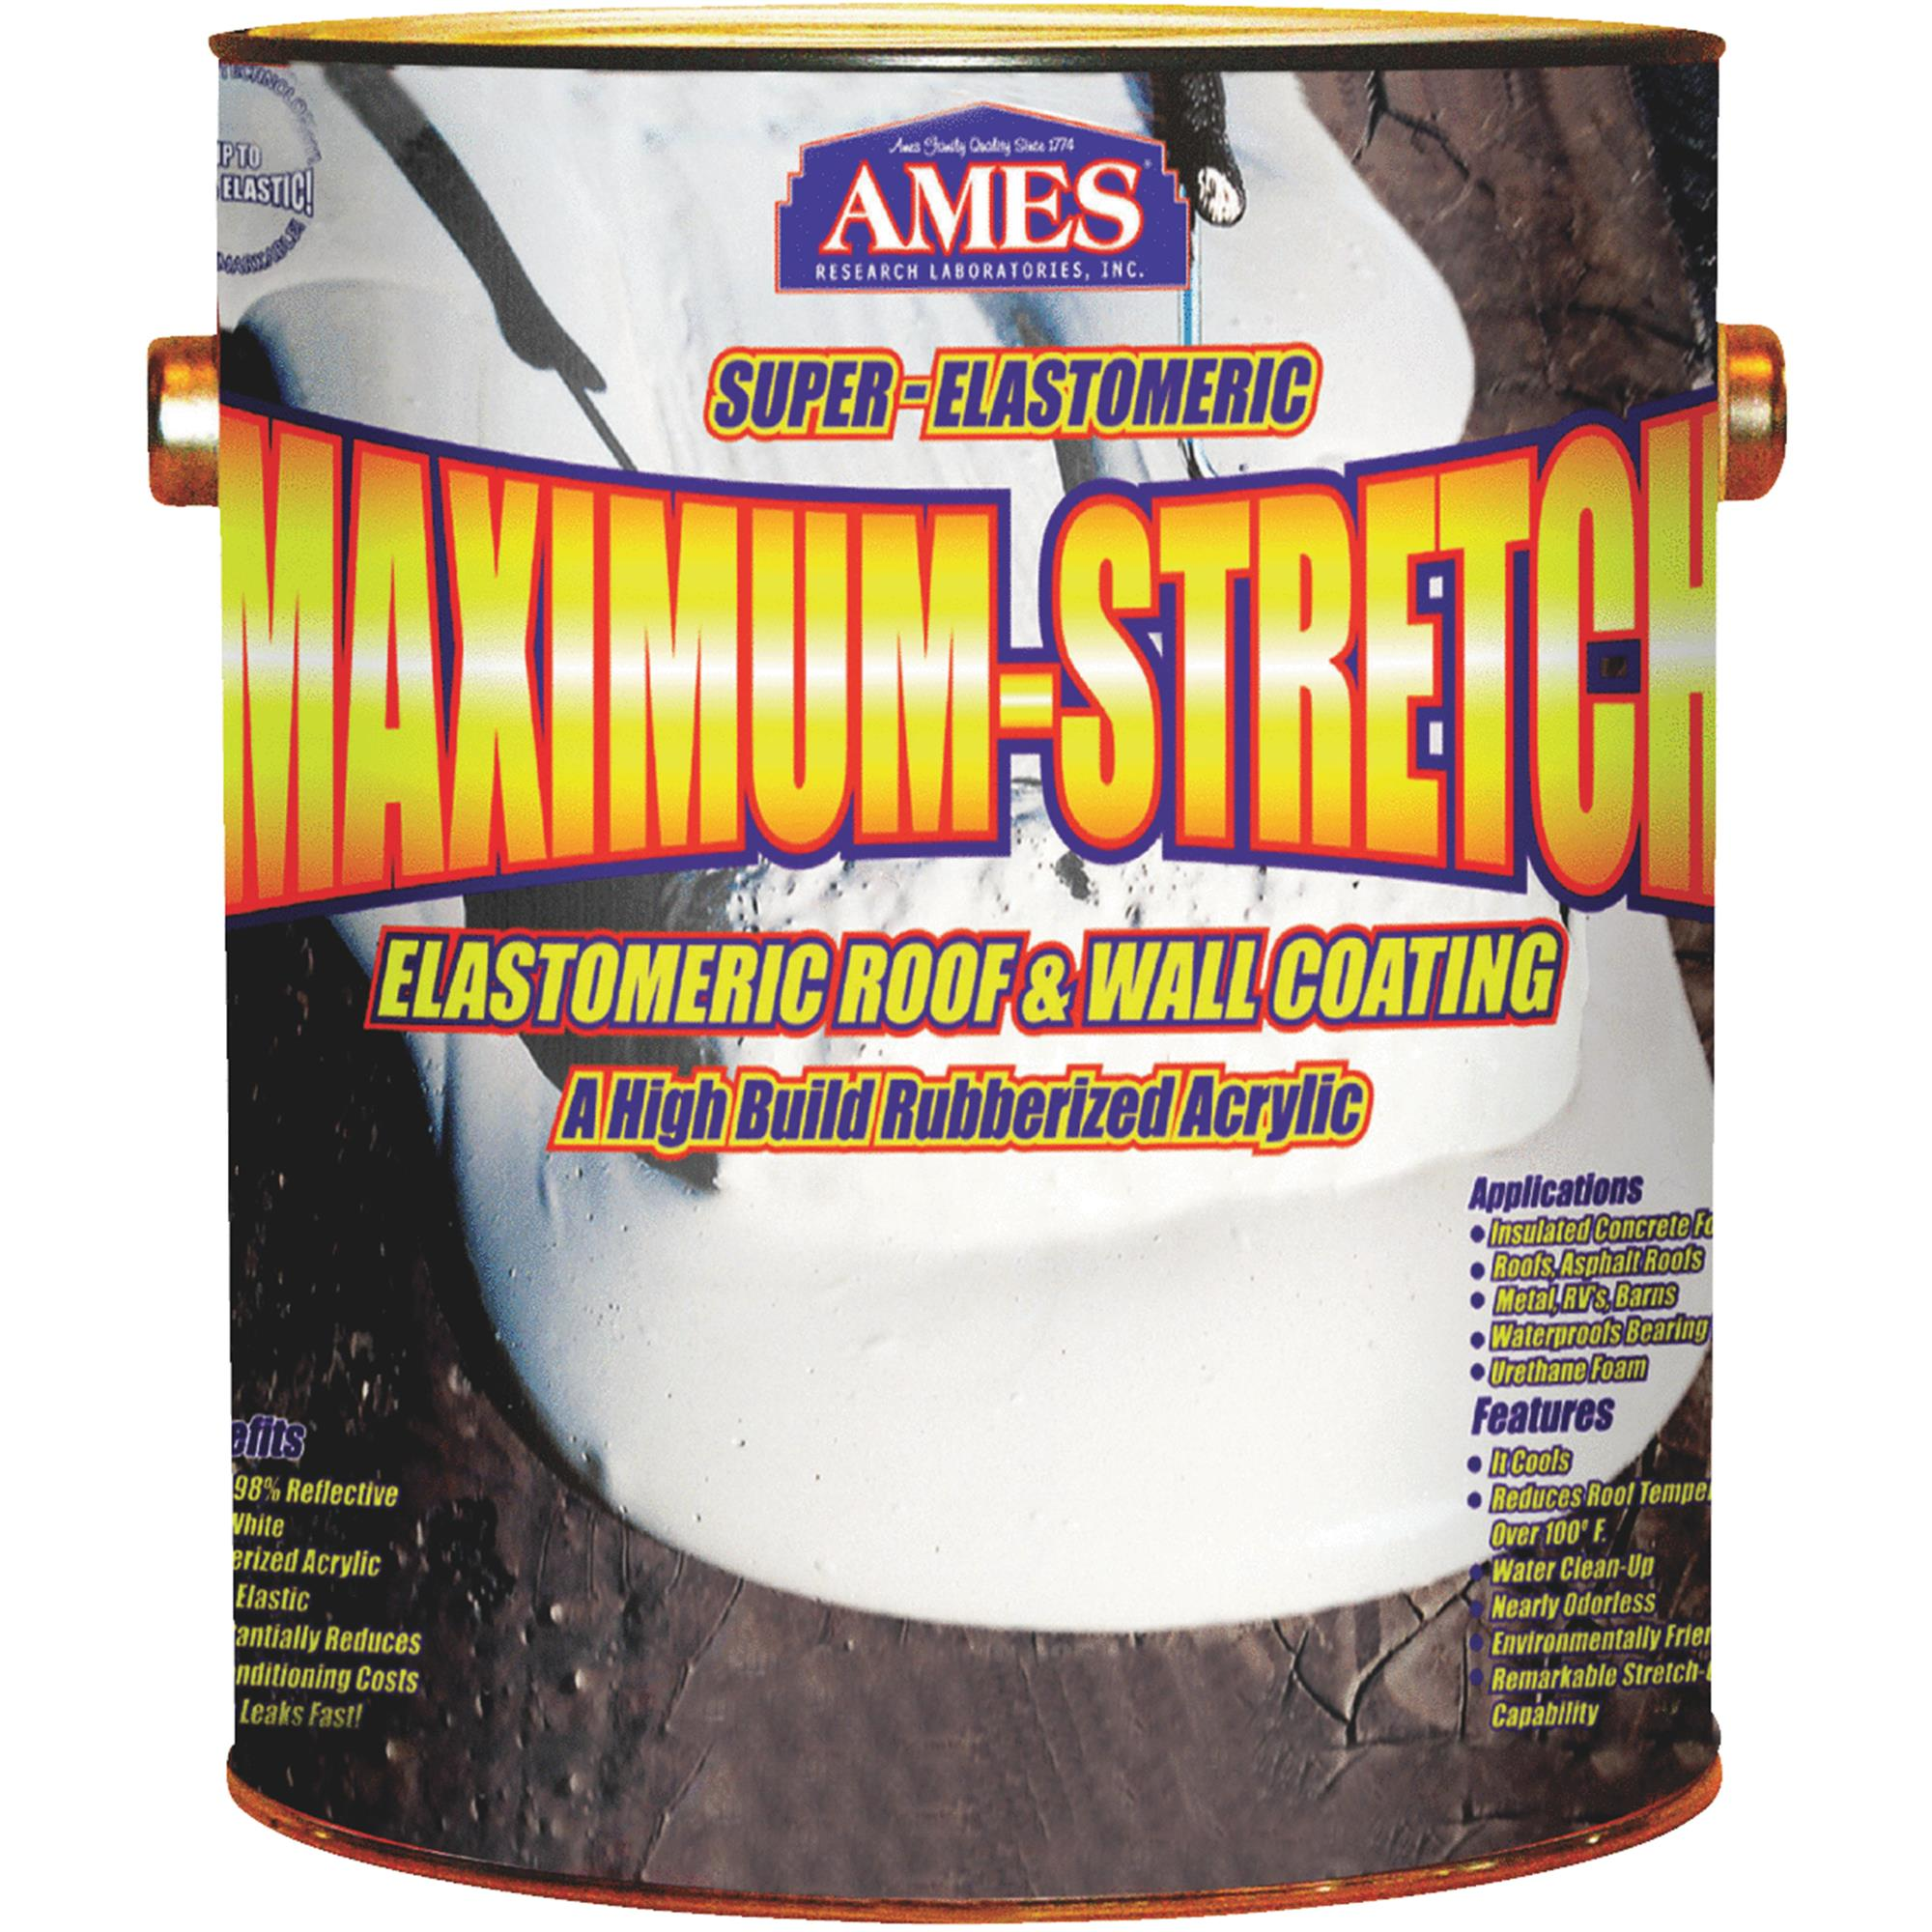 Ames Maximum Stretch Rubber and Acrylic Roof Coating 1 gallon White by Ames Research Laboratories, Inc.